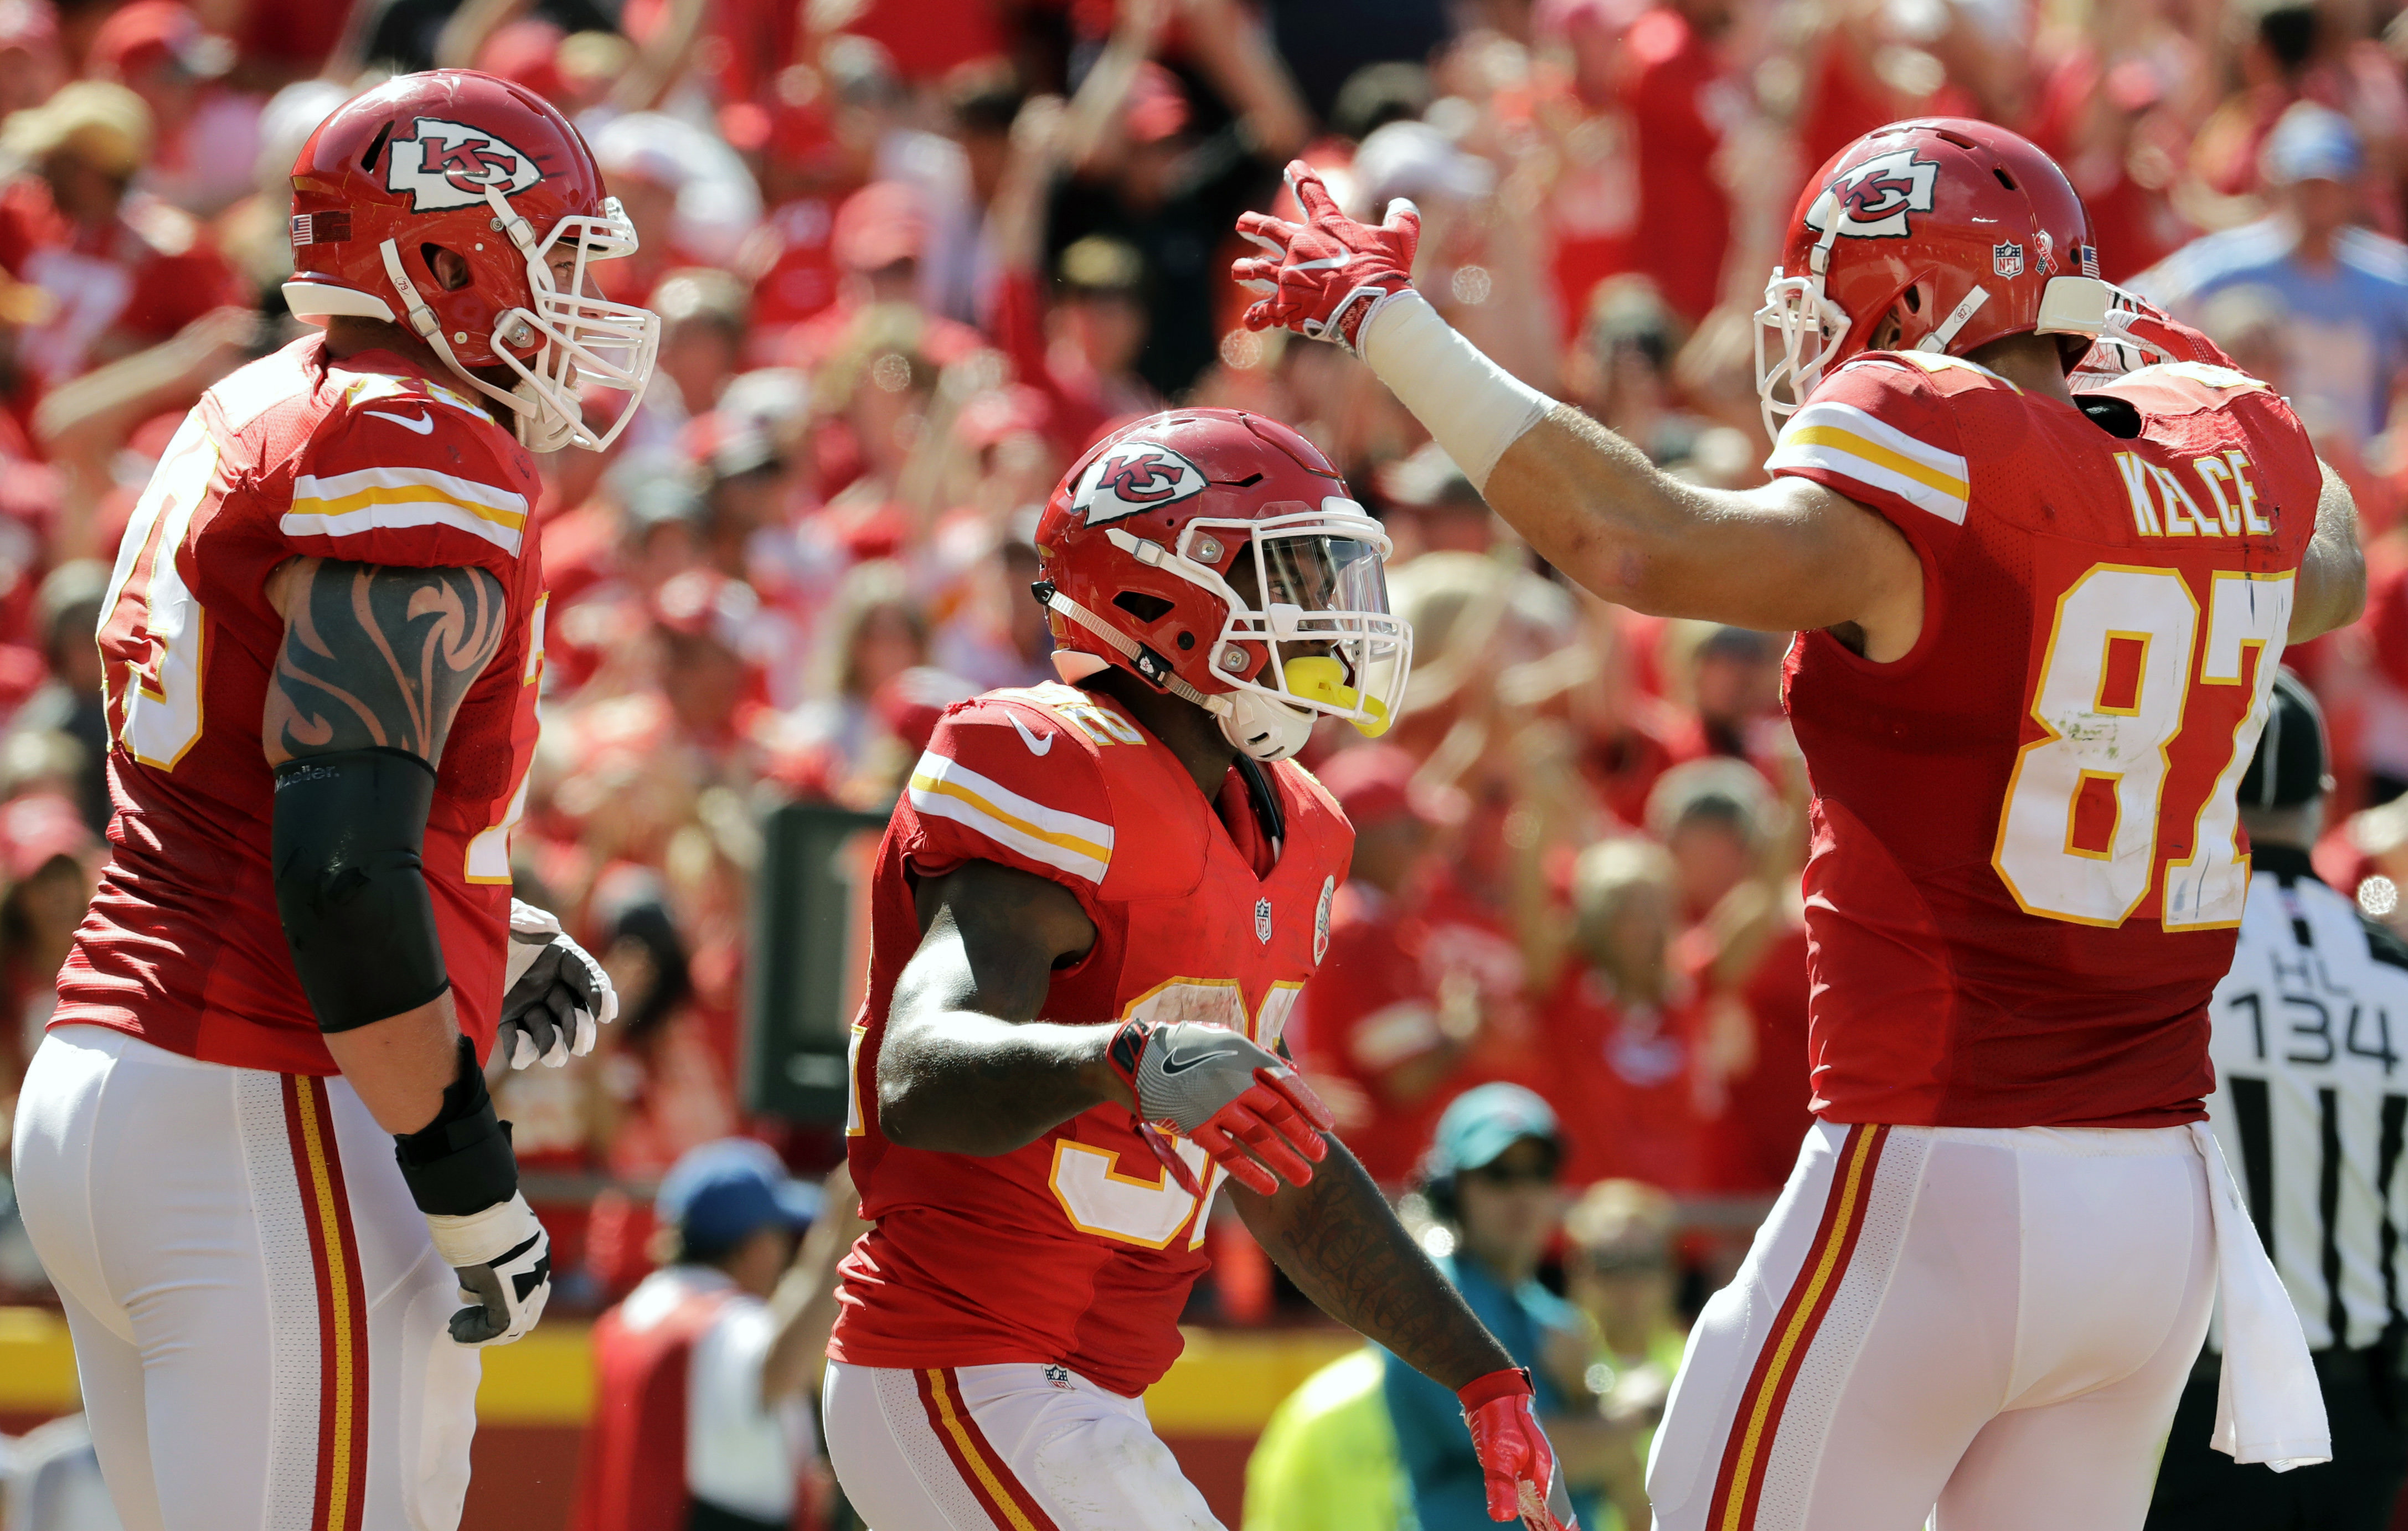 Kansas City Chiefs tight end Travis Kelce (87) greets running back Spencer Ware (32) after Ware scored a touchdown during the second half of an NFL football game against the San Diego Chargers in Kansas City, Mo., Sunday, Sept. 11, 2016. (AP Photo/Charlie